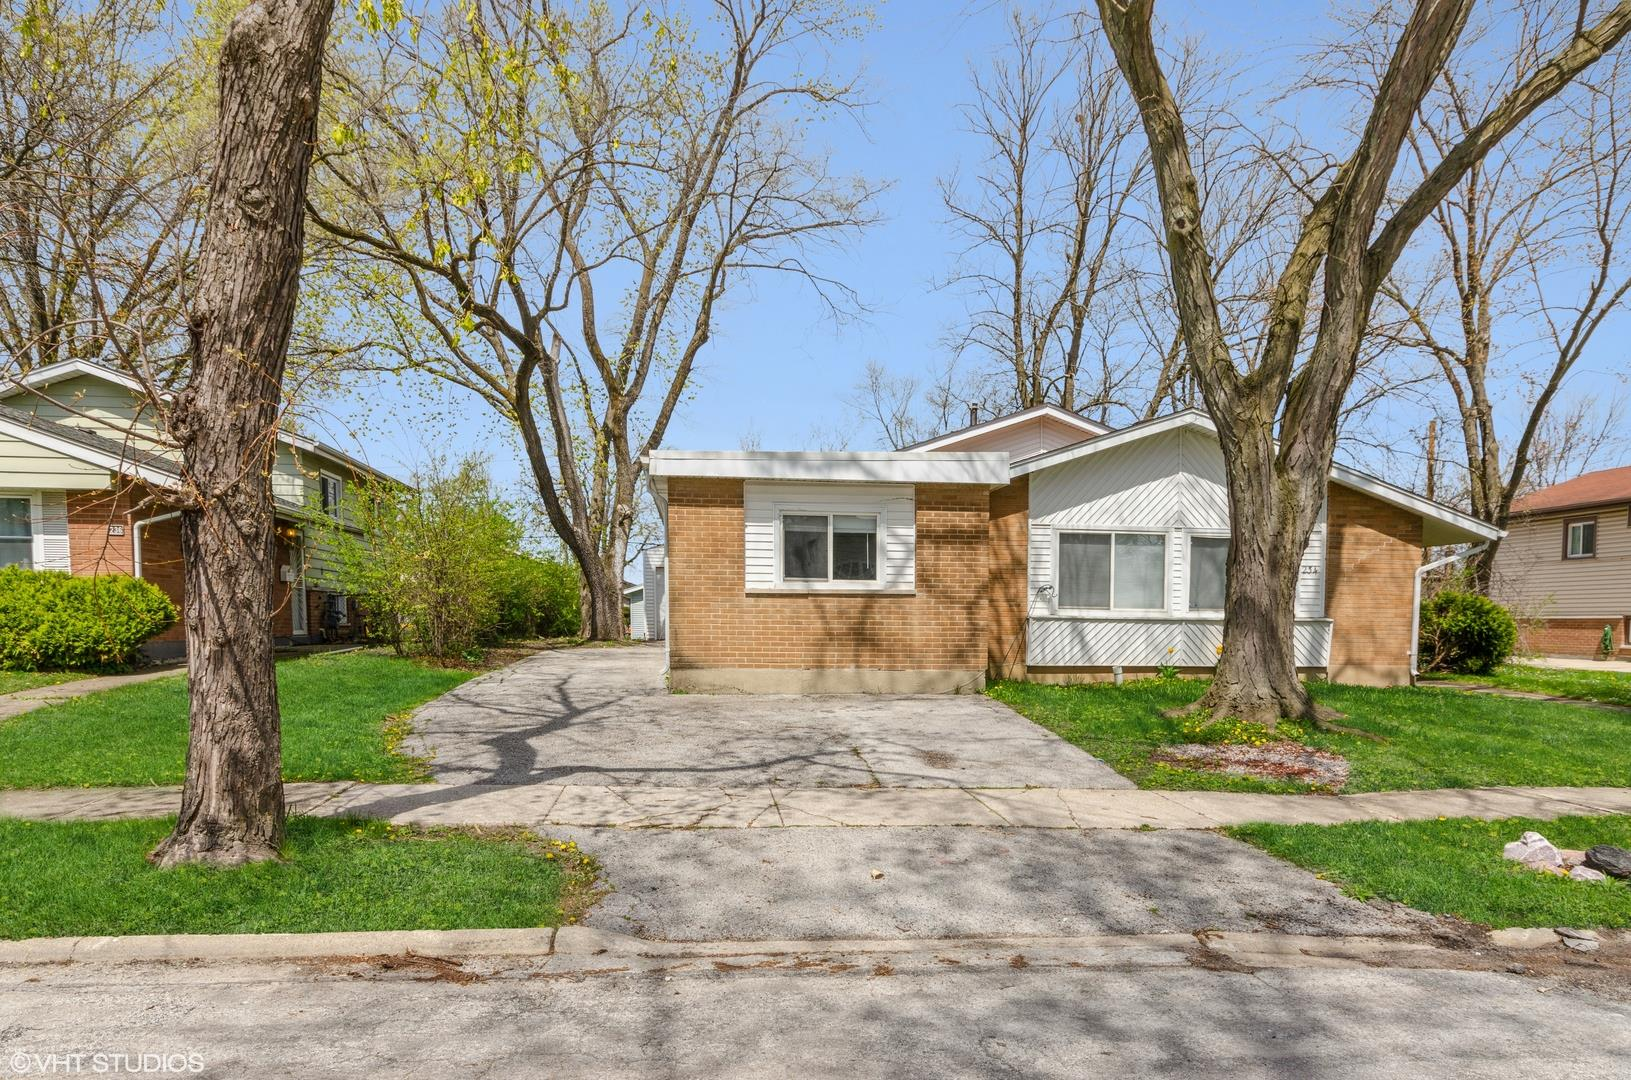 234 Gentry Street, Park Forest, IL 60466 - #: 11060579